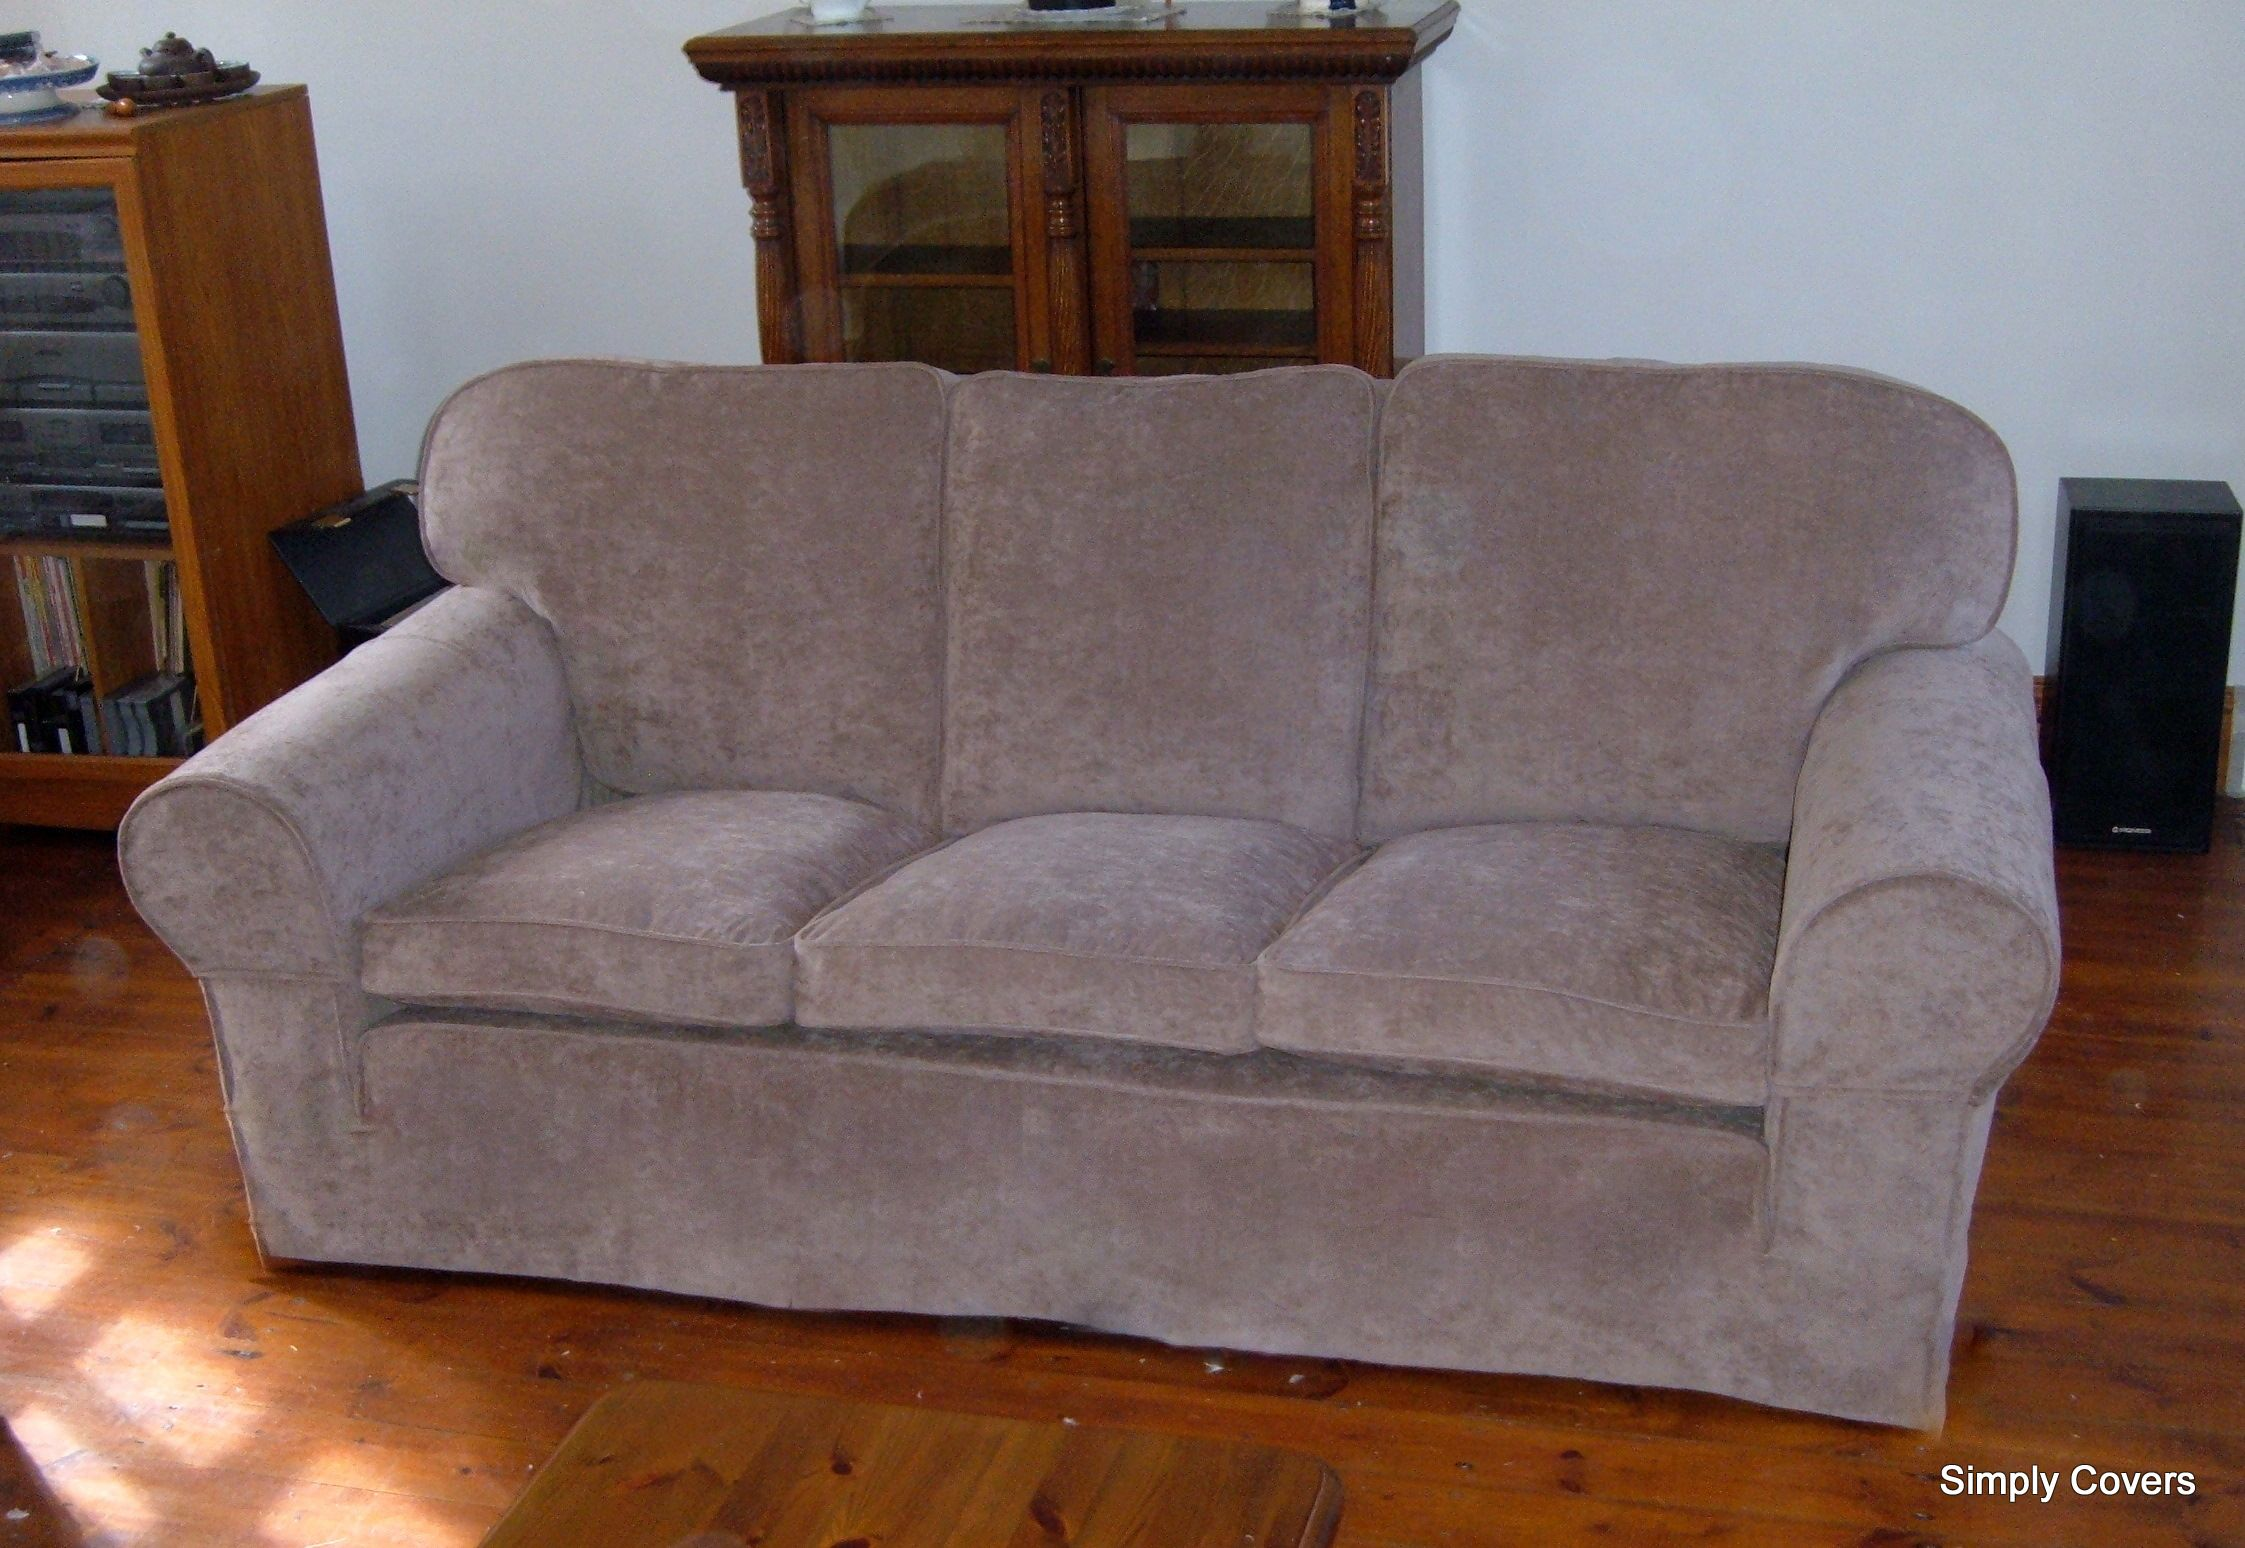 A sofa eezecover in distressed velvet really transformed this old tatty threadbare sofa a really inexpensive way to smarten up the furniture using our eeze